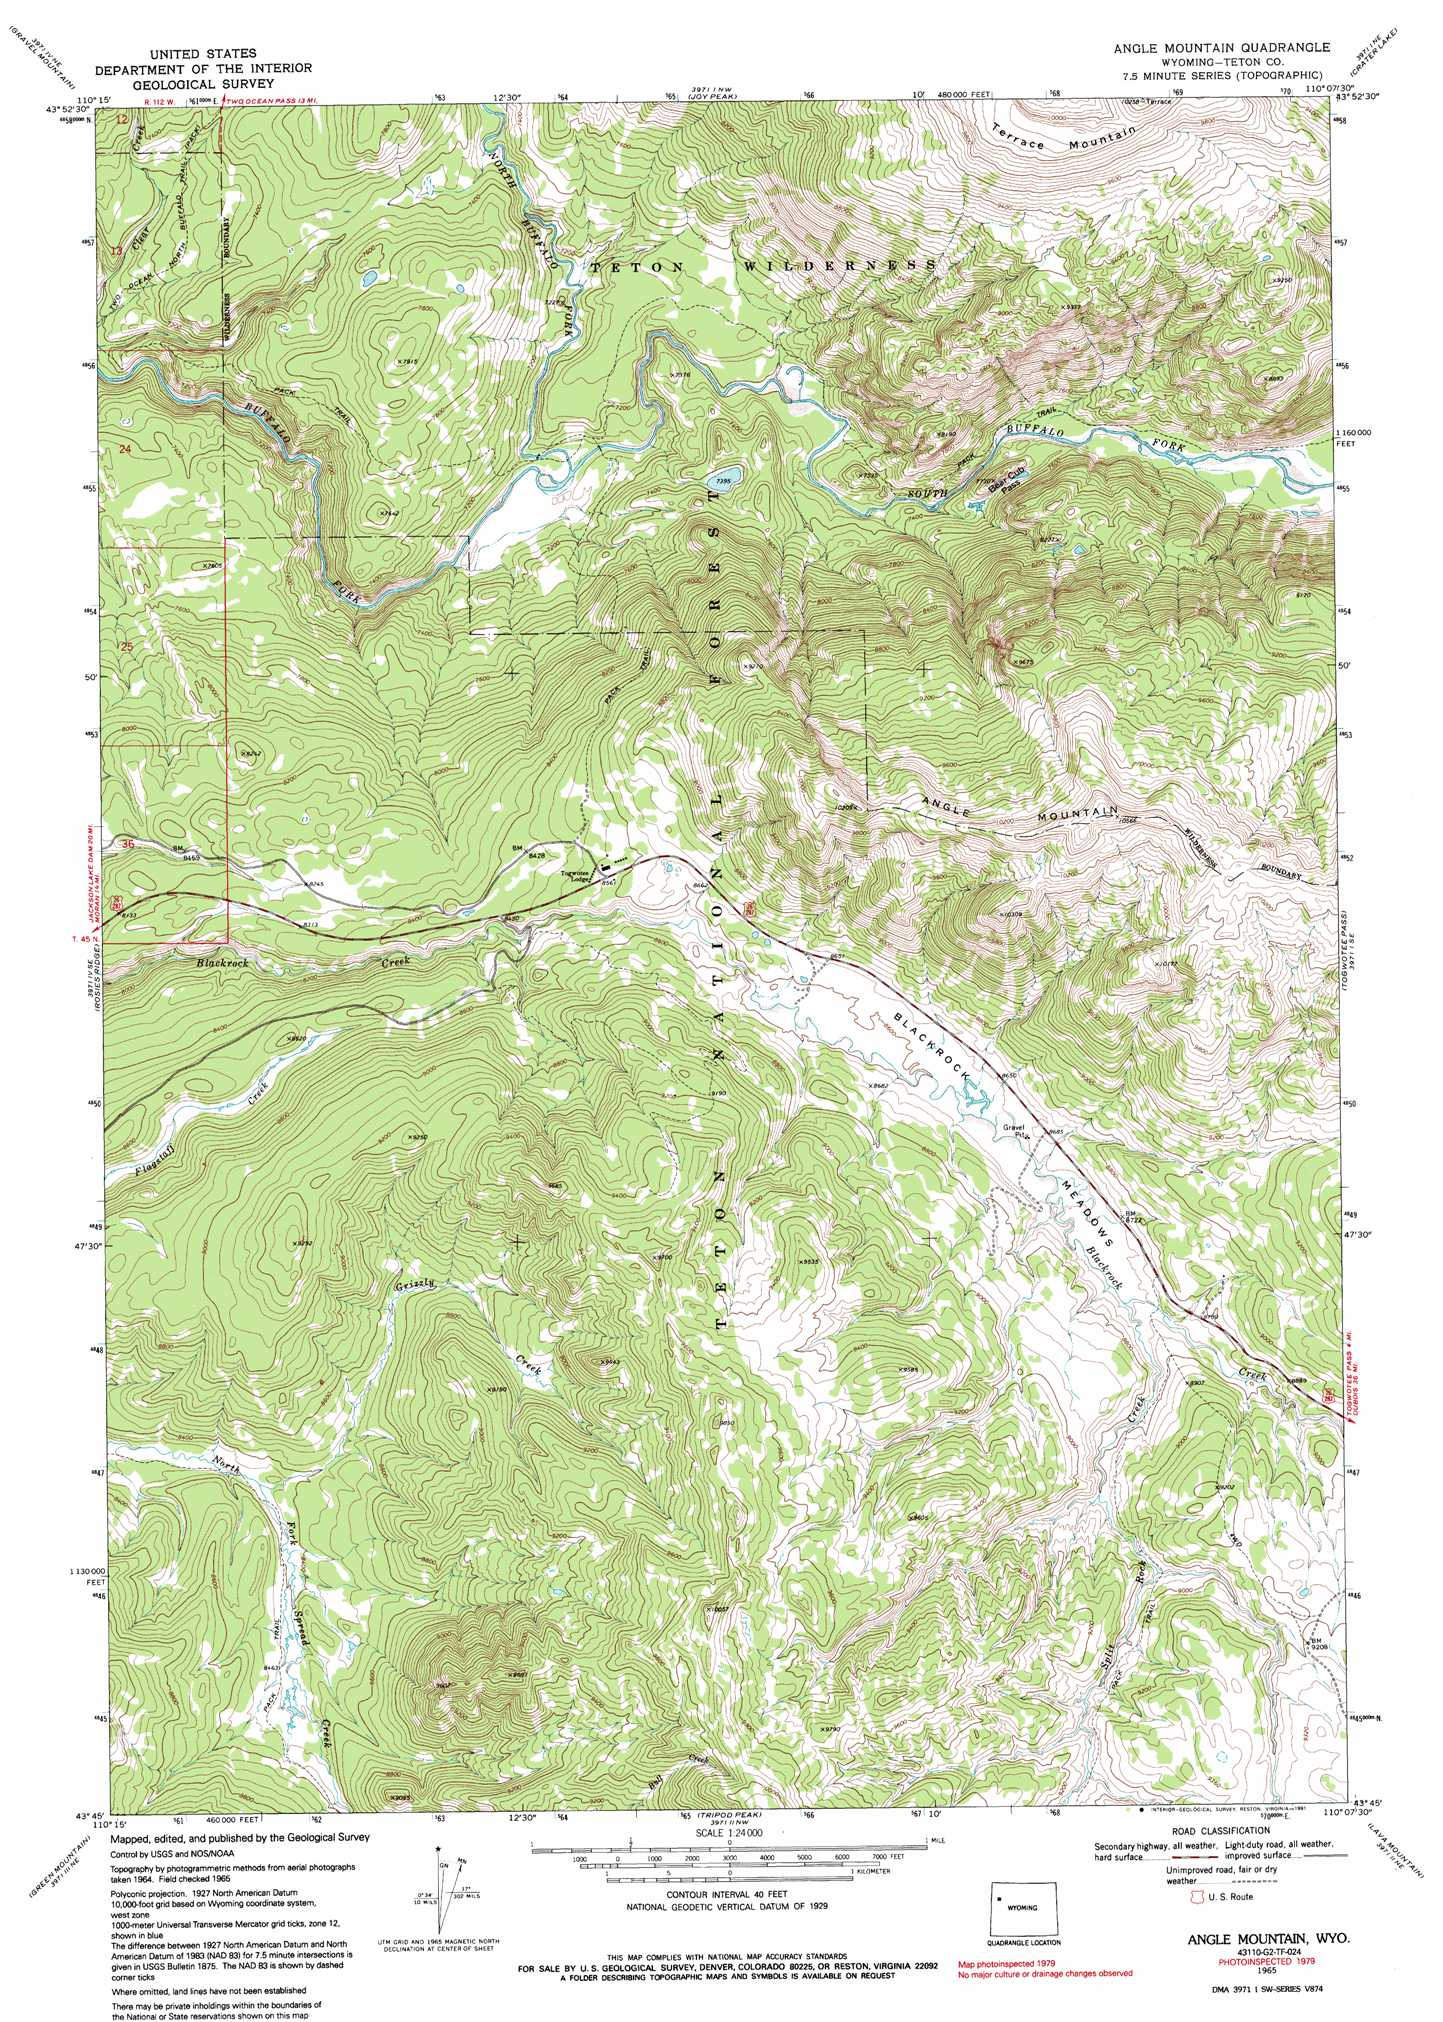 Angle Mountain topographic map, WY - USGS Topo Quad 43110g2